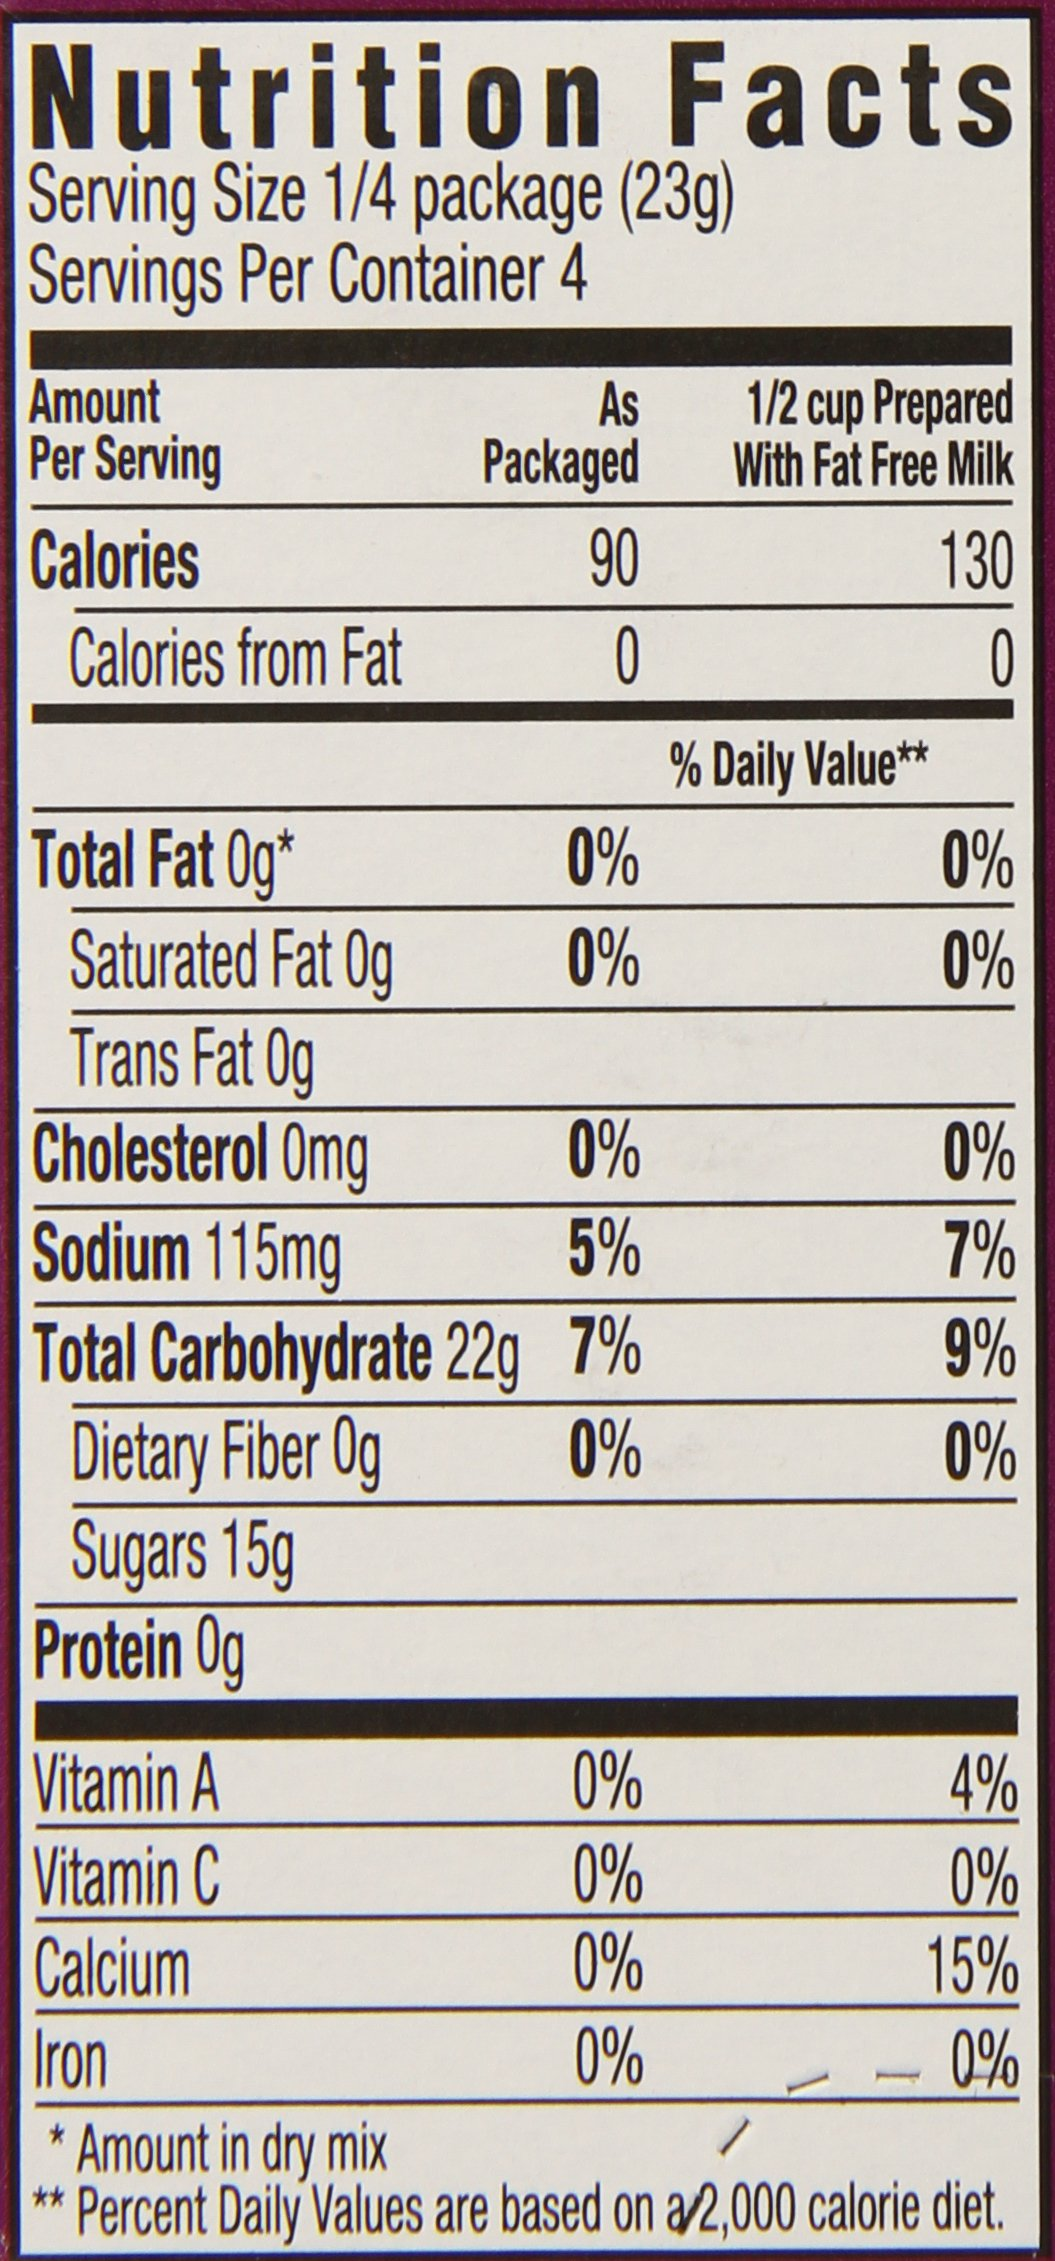 JELL-O Fat Free Tapioca Pudding & Pie Filling Mix (3 oz Boxes, Pack of 24) by Jell-O (Image #2)